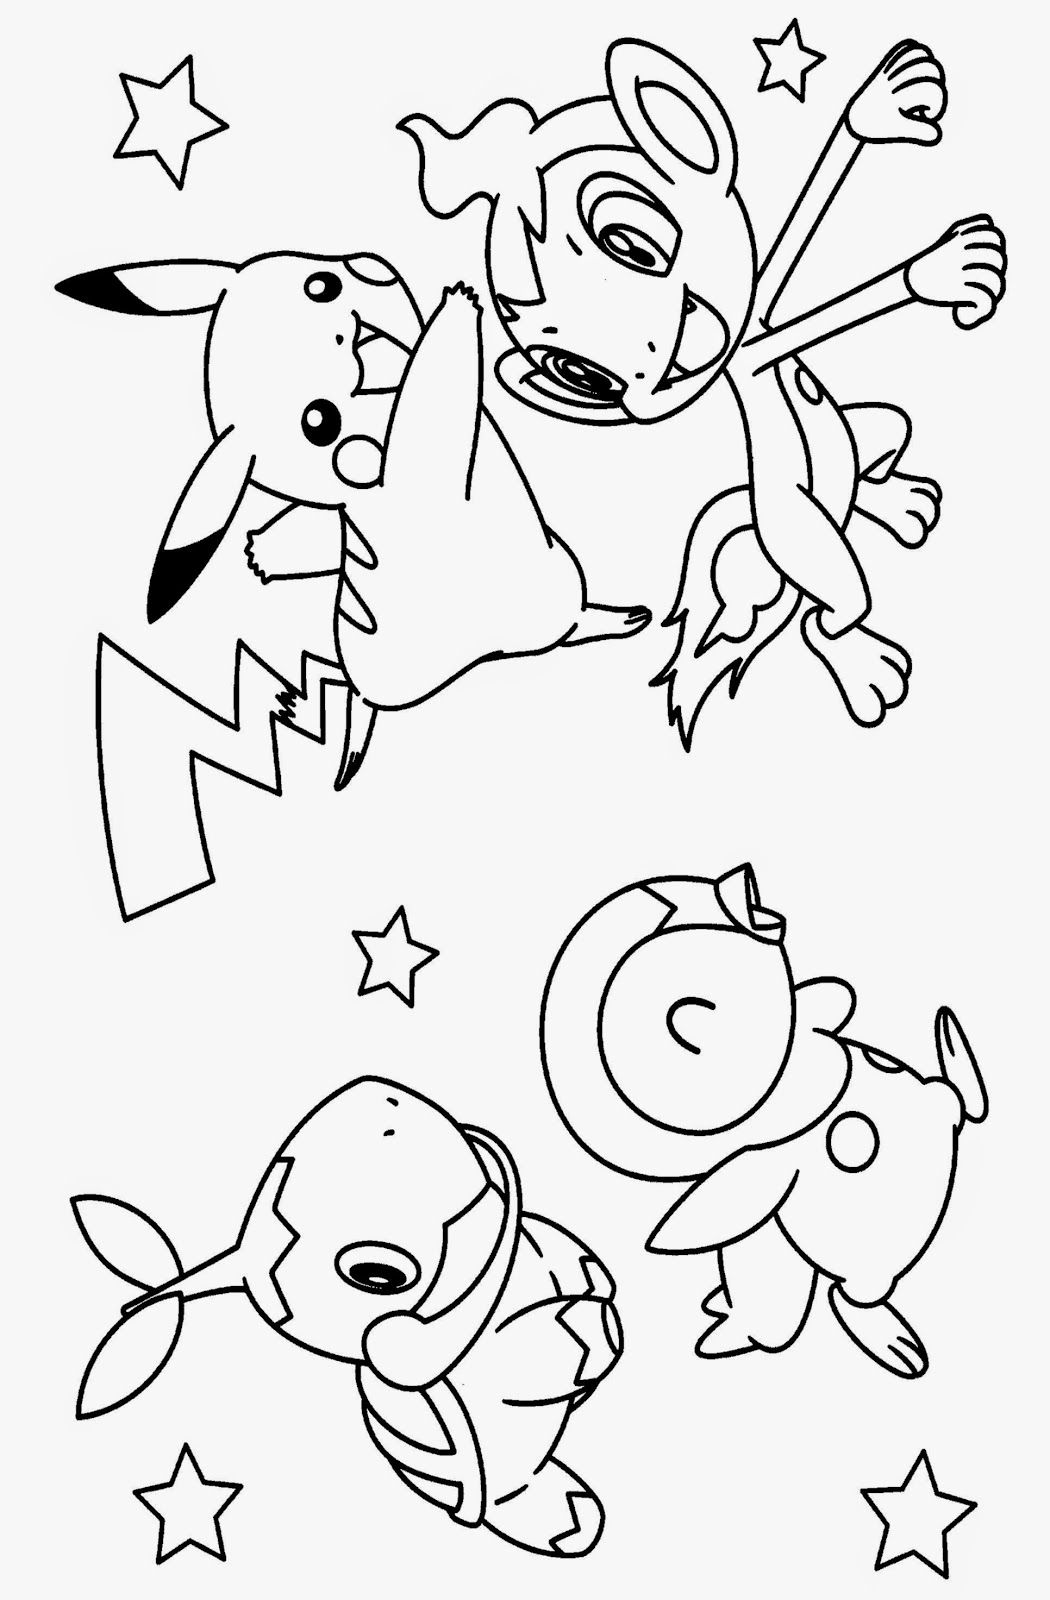 New 10 Printable Coloring Pages For Elementary Students